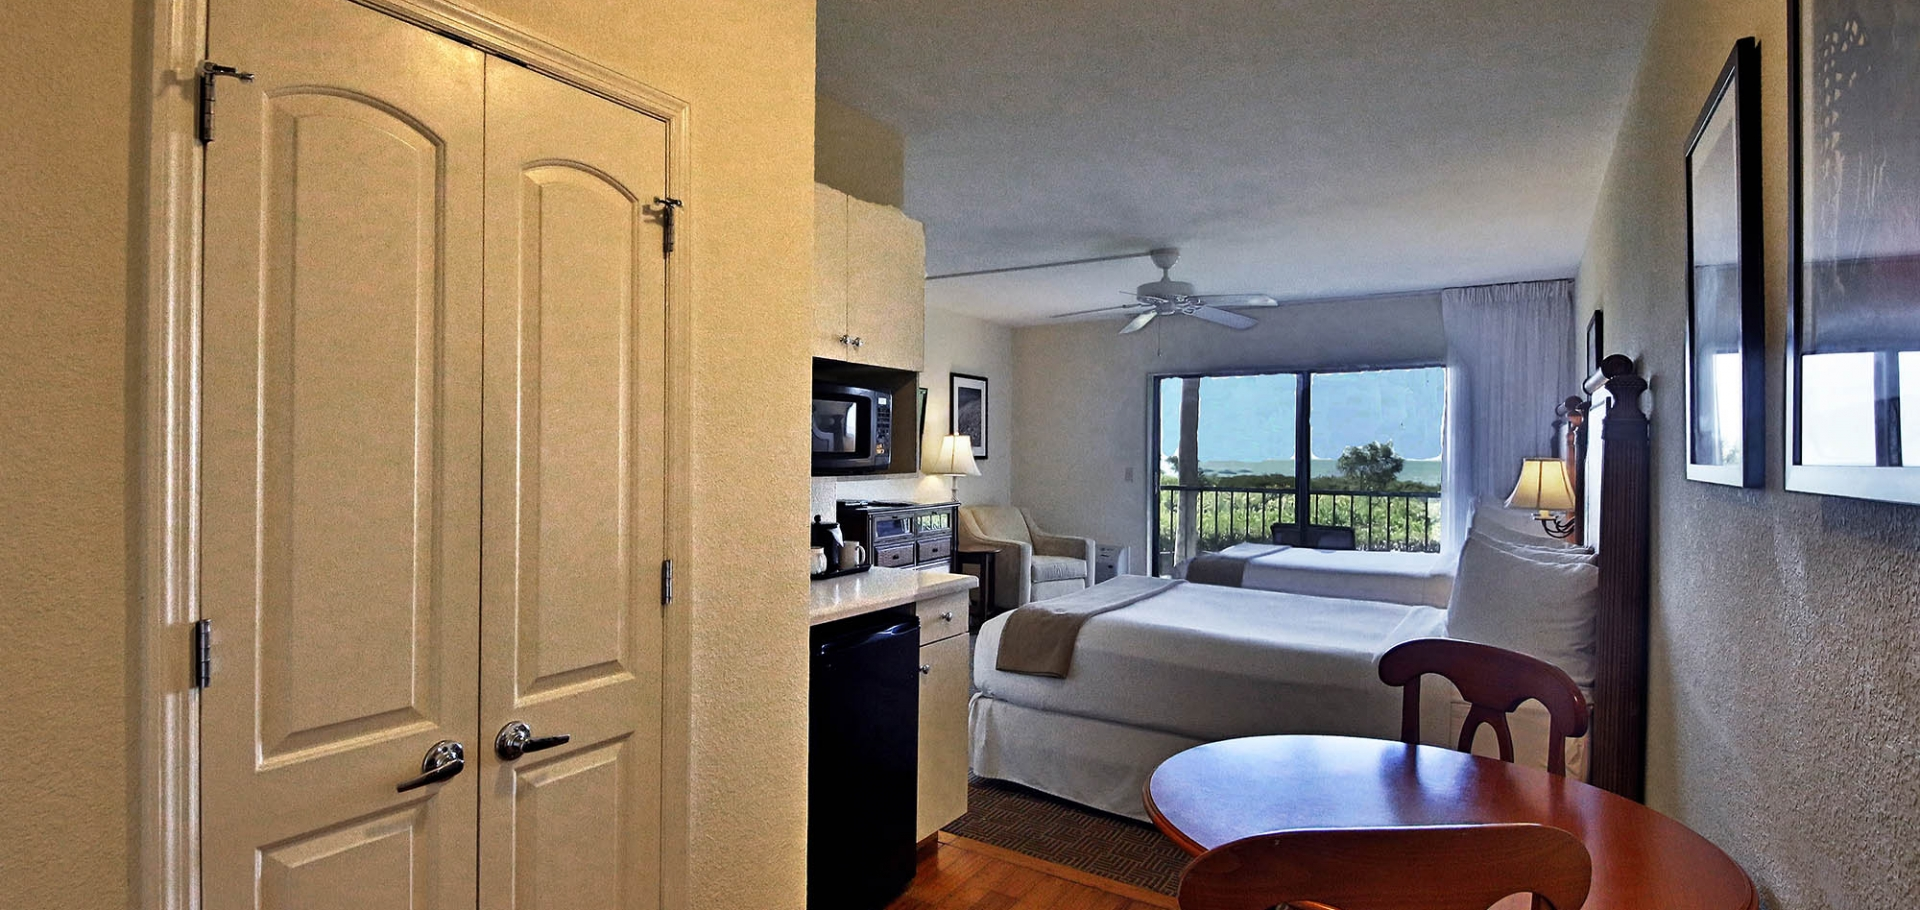 Sanibel Inn bedroom and balcony view